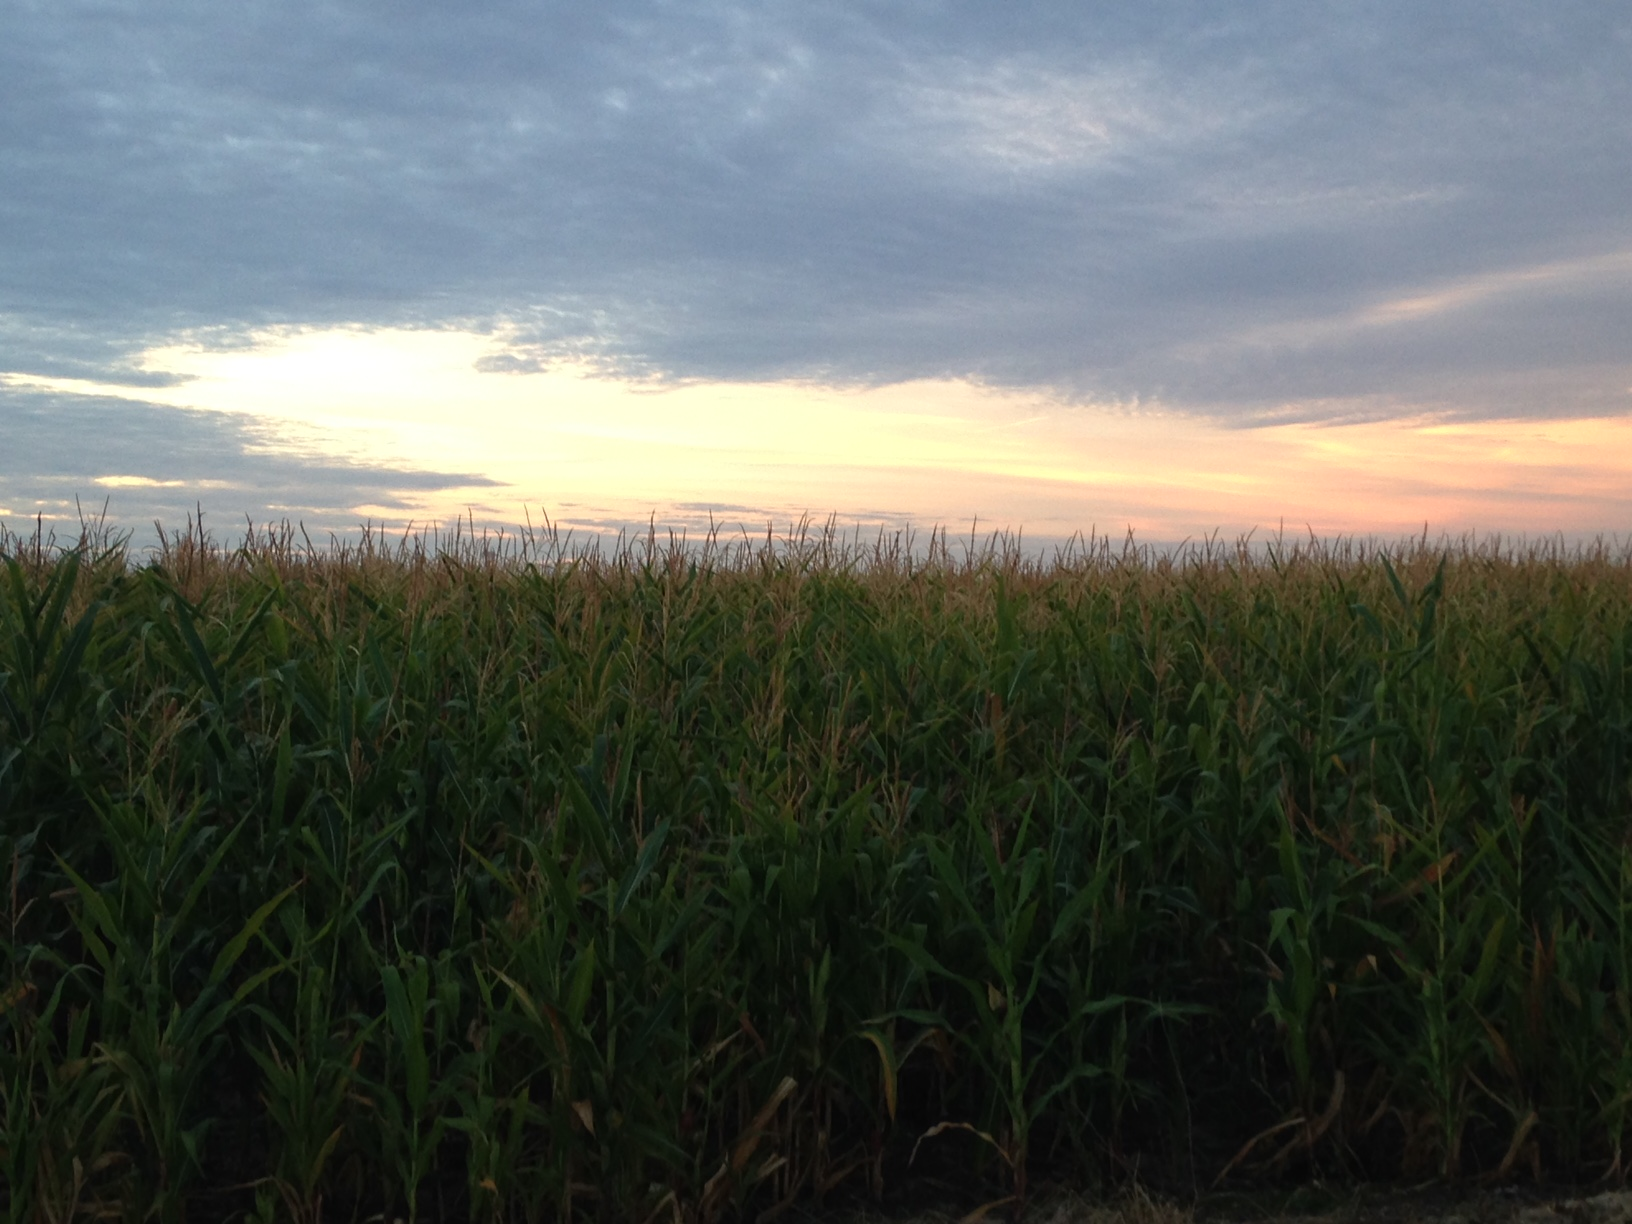 Sunrise through corn stalks. It's actually quite creepy to walk through corn during the pre-dawn. believe it or not.